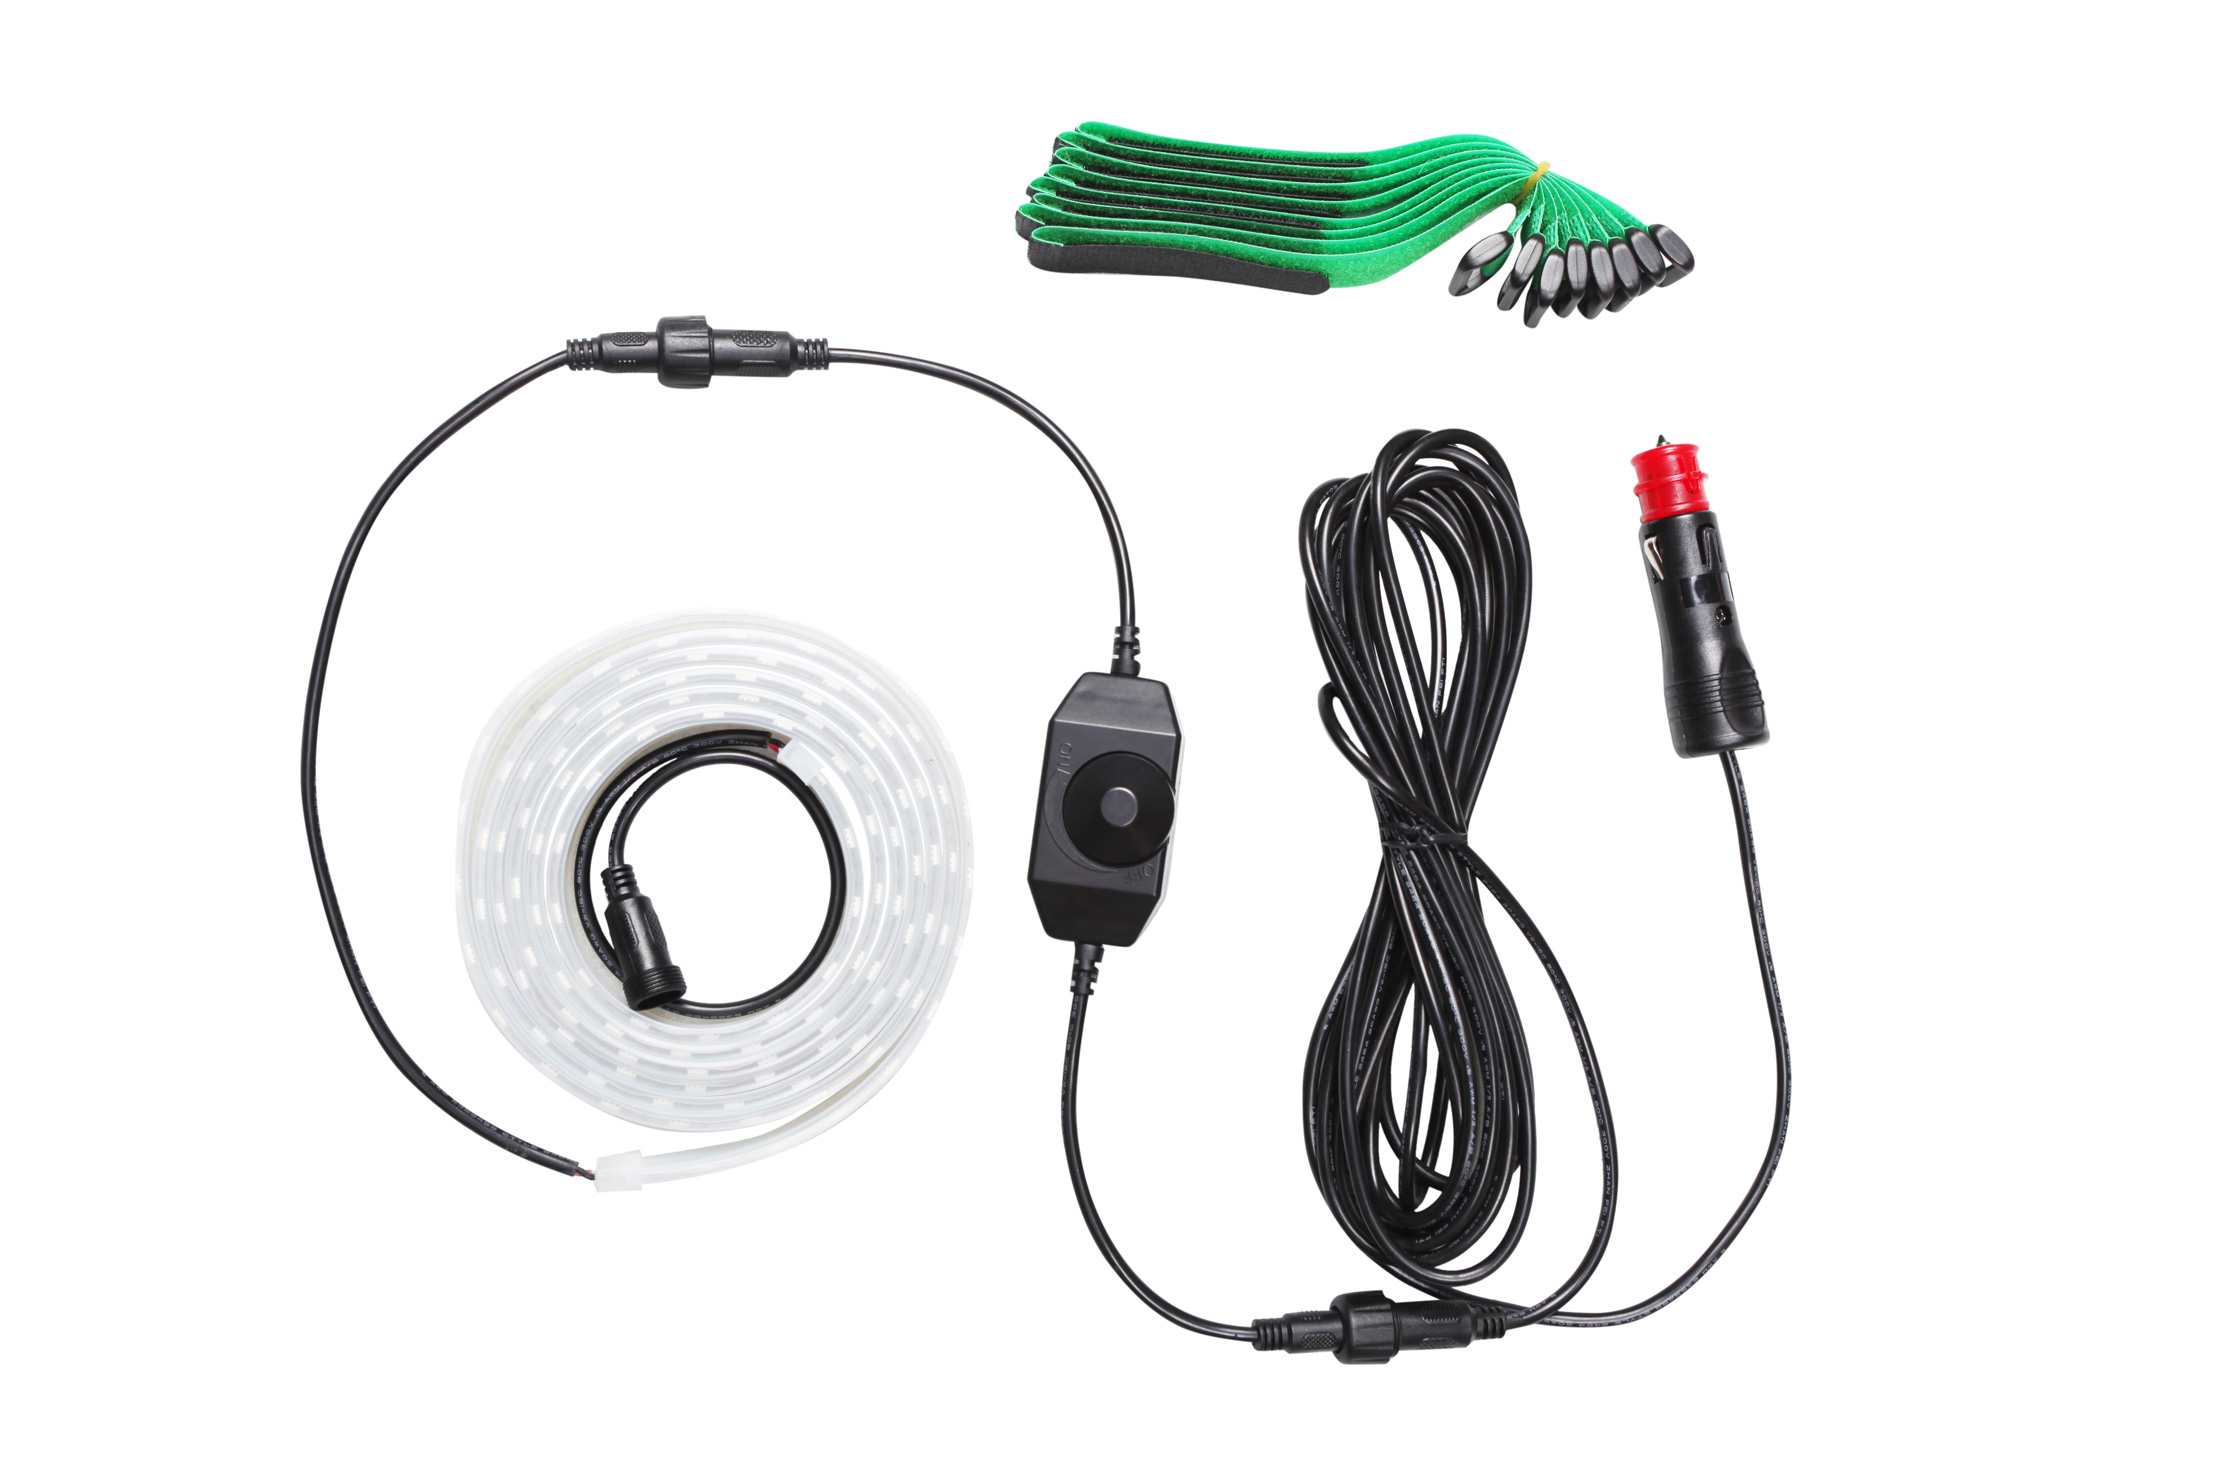 12v 2m LED Strip Light Kit